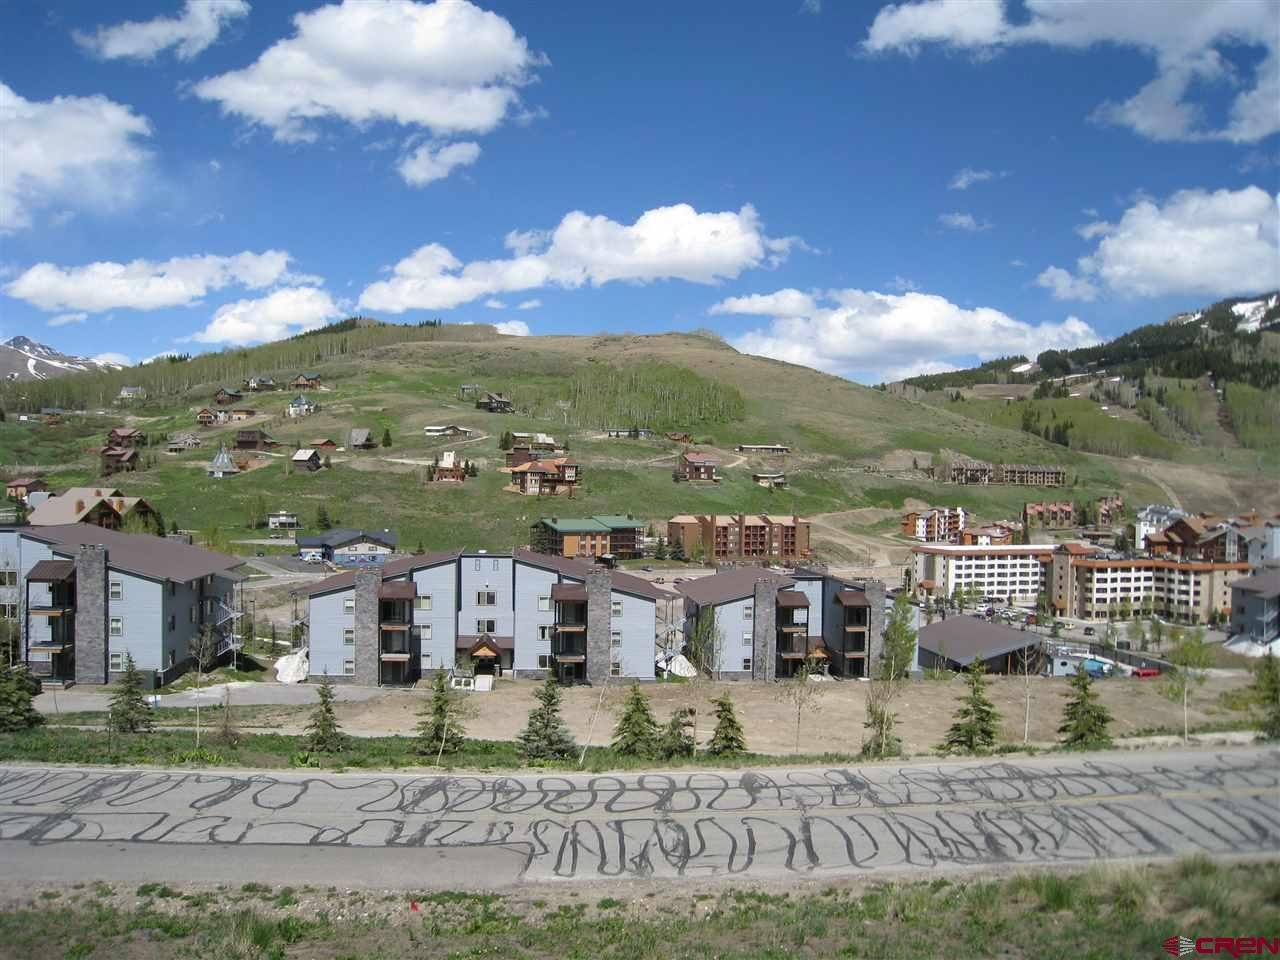 MLS# 757036 - 11 - 17 Marcellina Lane, Mt. Crested Butte, CO 81225